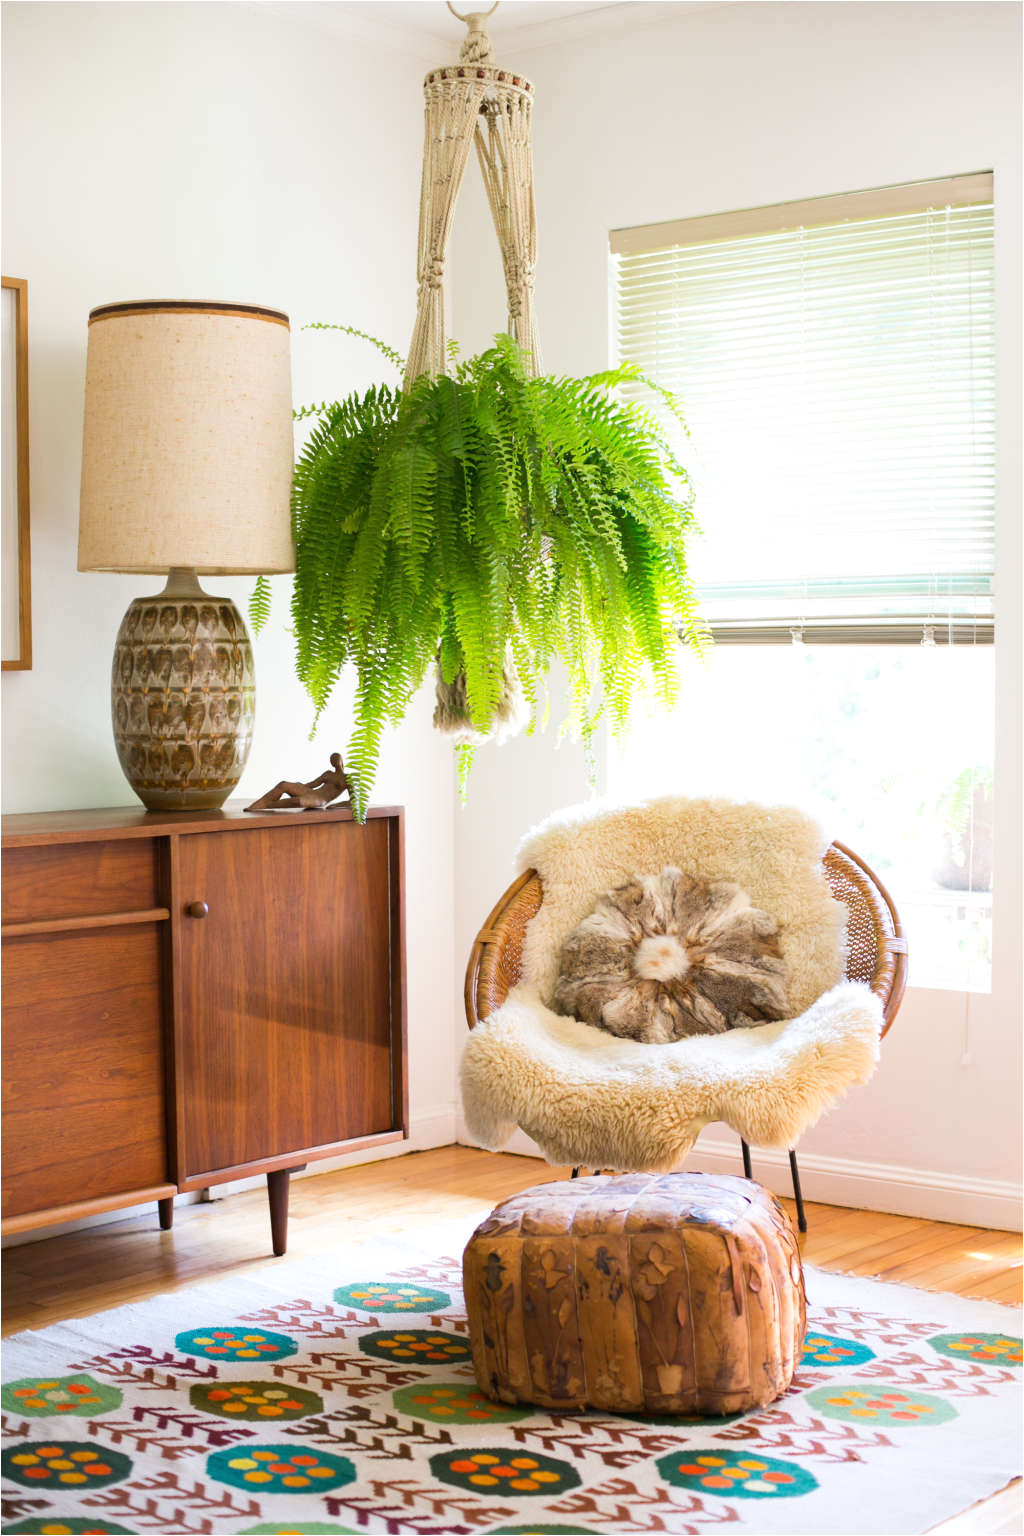 color texture size how to choose the right rug everytime apartment therapy